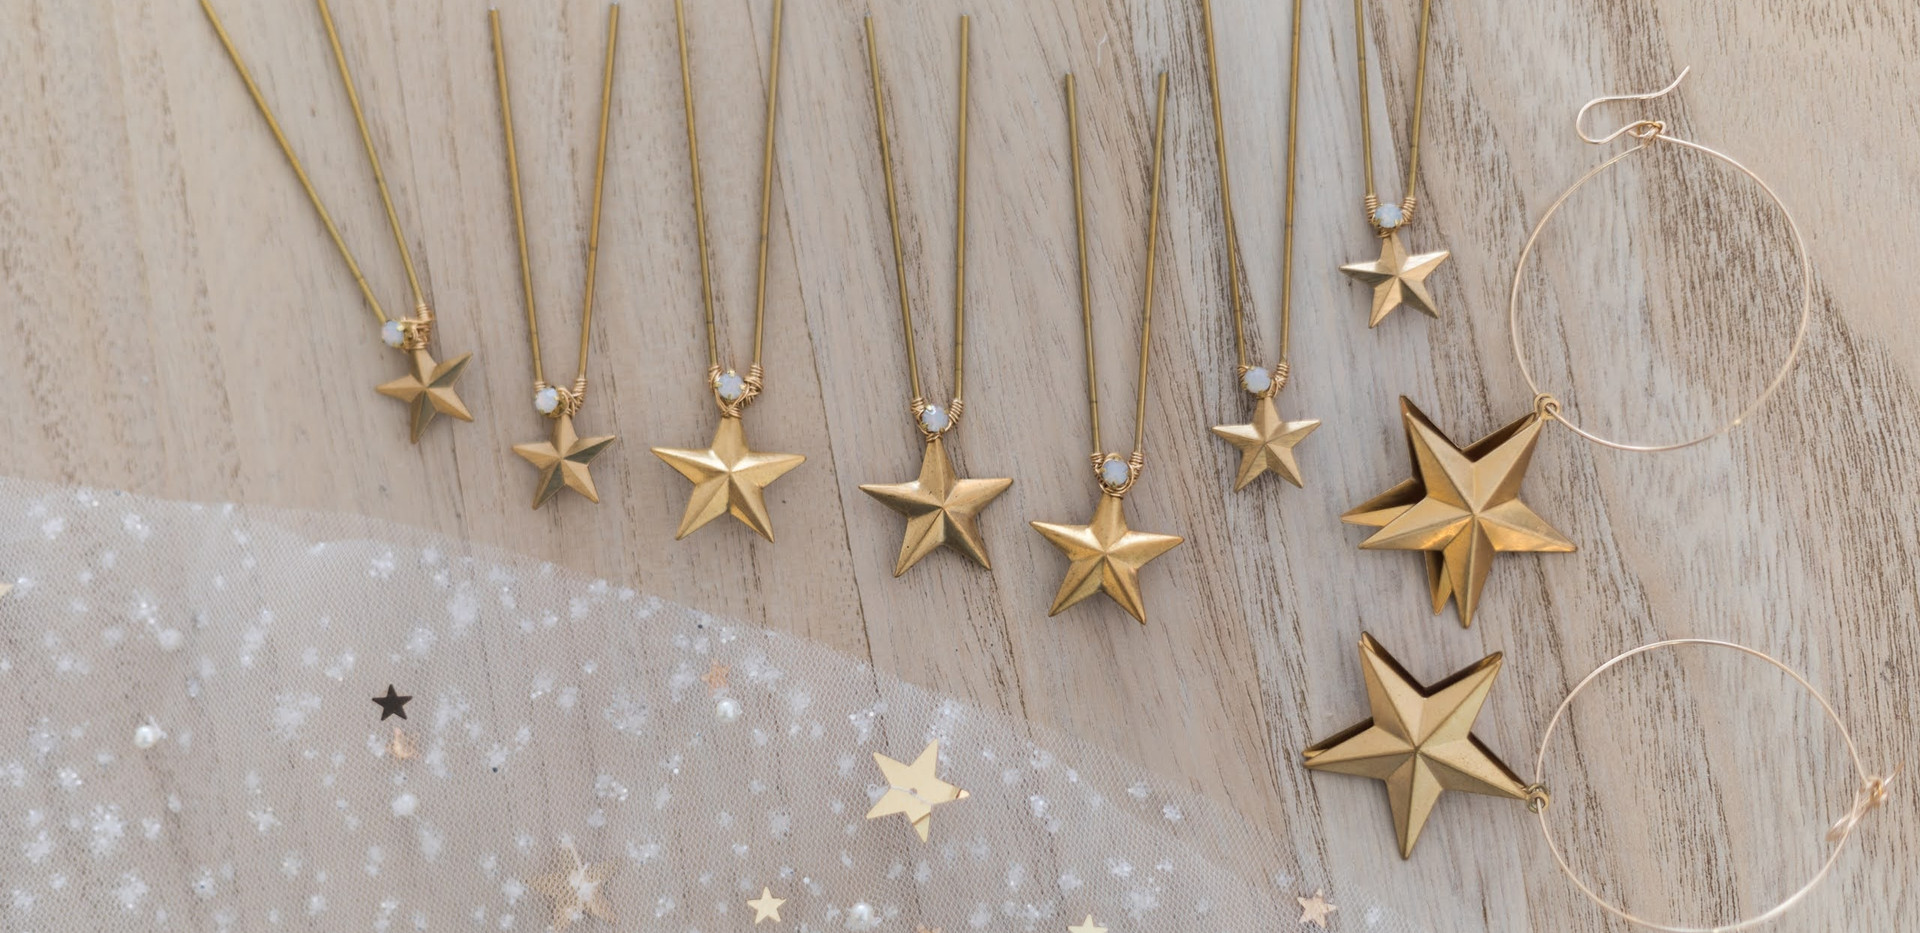 A close up of star accessories